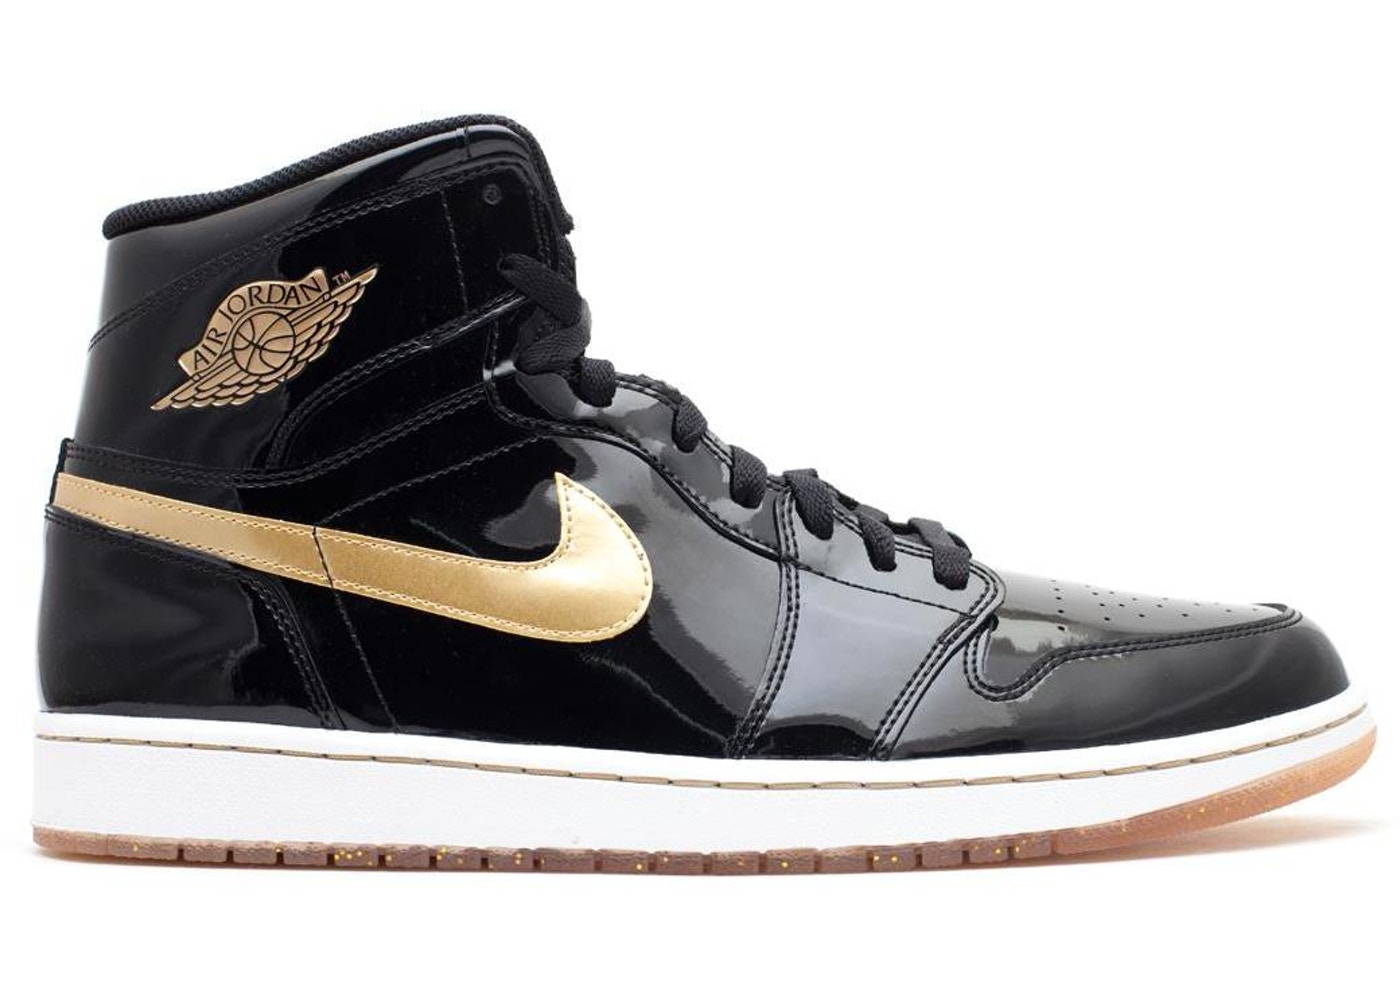 new style 91a2e 0d9f5 Sell. or Ask. Size  11.5. View All Bids. Jordan 1 Retro Black Metallic Gold  ...